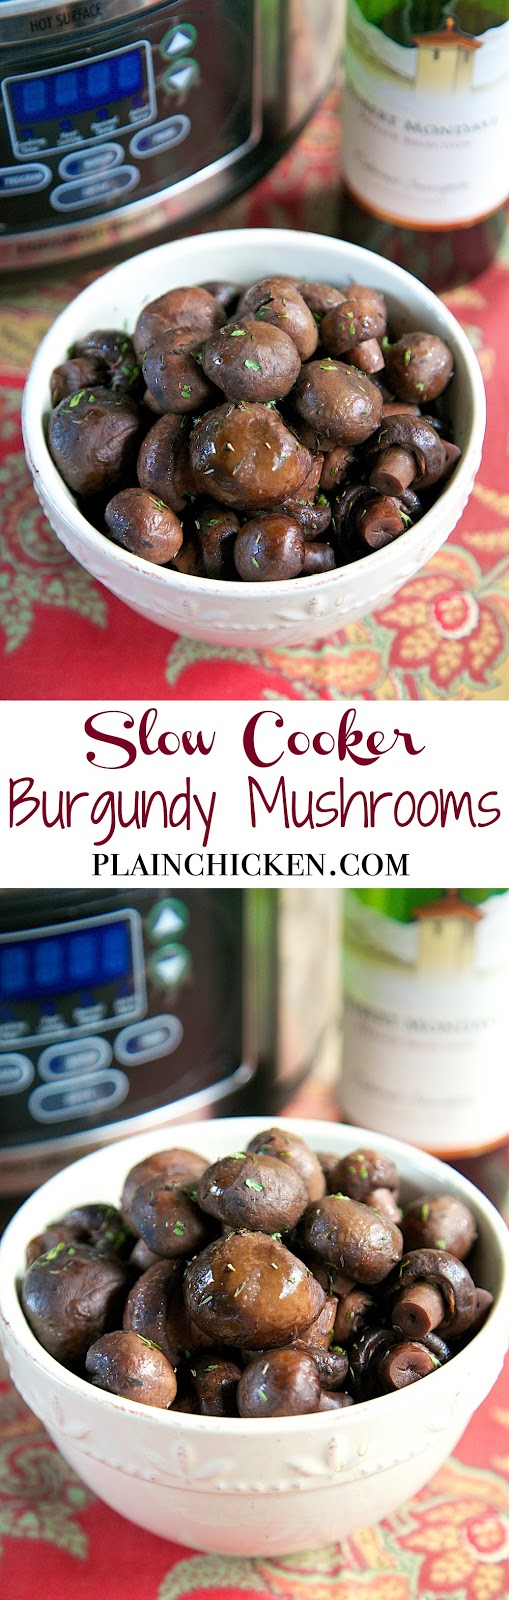 Slow Cooker Burgundy Mushrooms - fresh mushrooms slow cooked with red wine, beef broth and seasonings. Great as a side dish or over a steak. Can freeze leftover juices to flavor soups and vegetables.